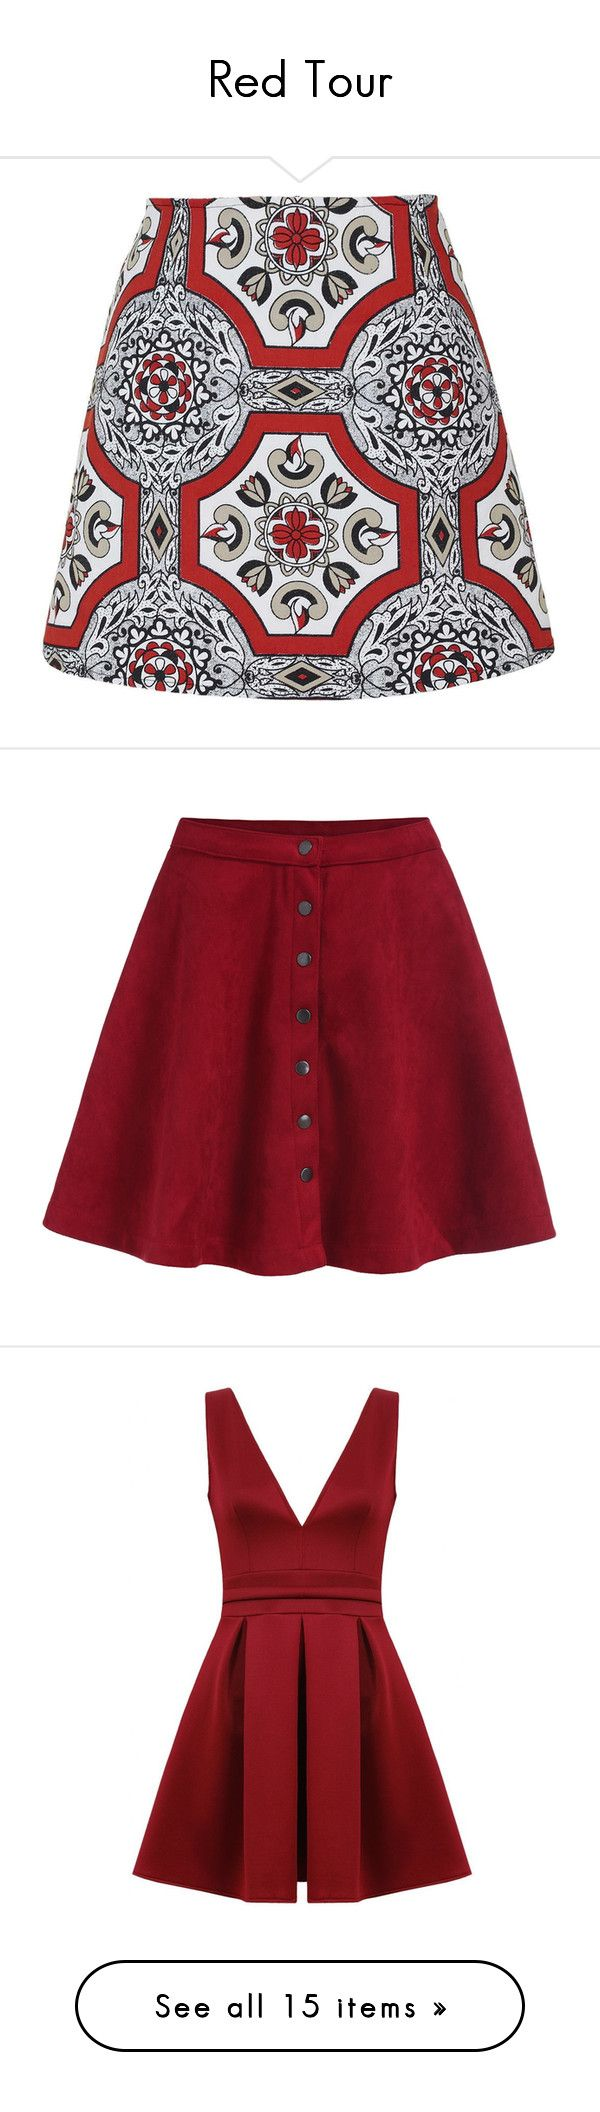 """Red Tour"" by purblex ❤ liked on Polyvore featuring skirts, bottoms, red, red skirt, high waisted skirts, red knee length skirt, a line skirt, red high waisted skirt, saia and red flare skirt"